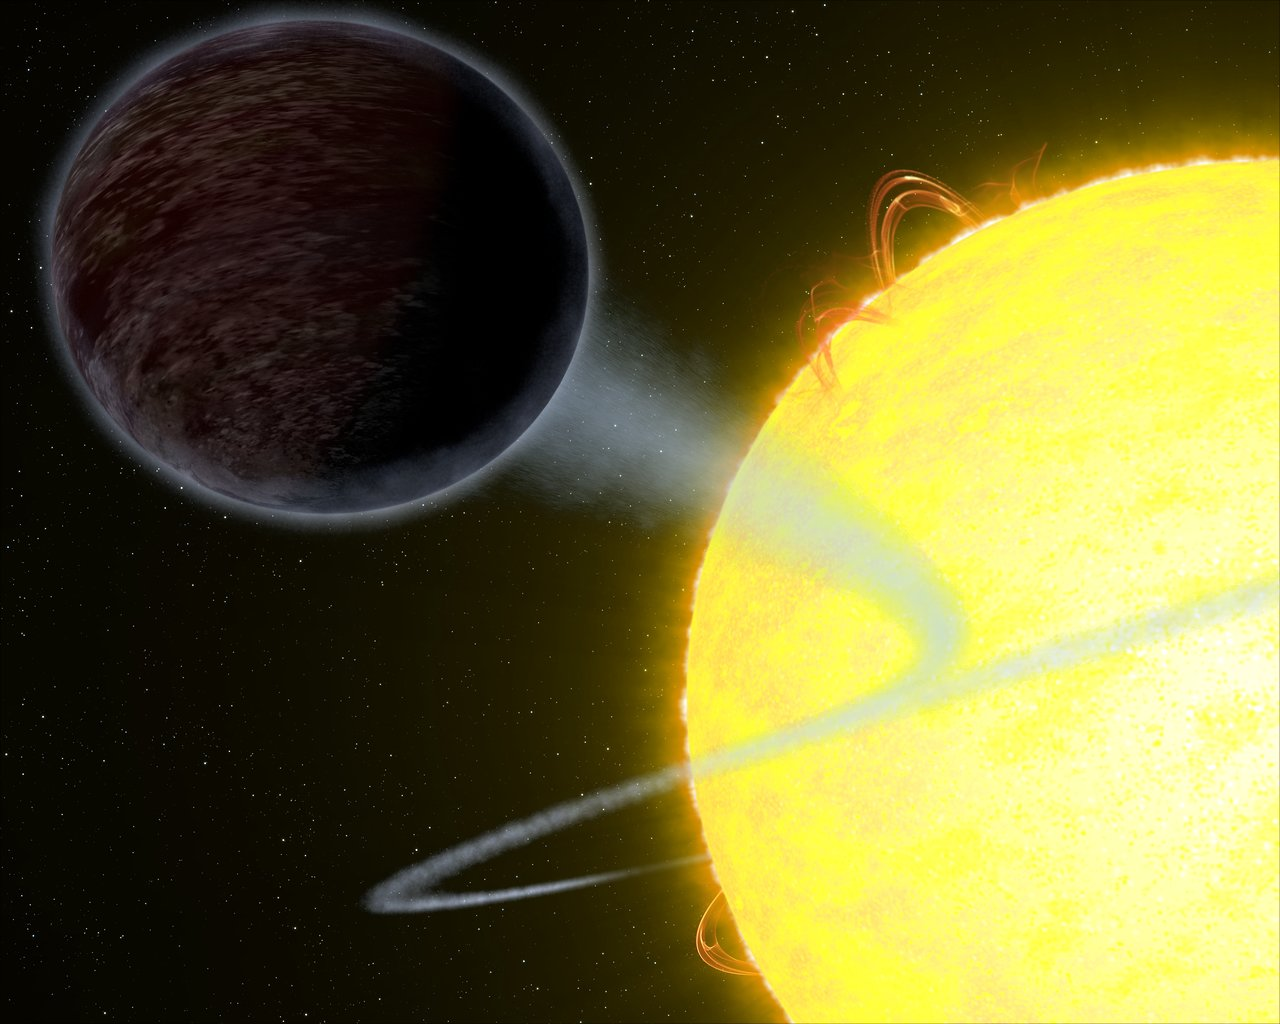 This illustration shows one of the darkest known exoplanets — an alien world as black as fresh asphalt.